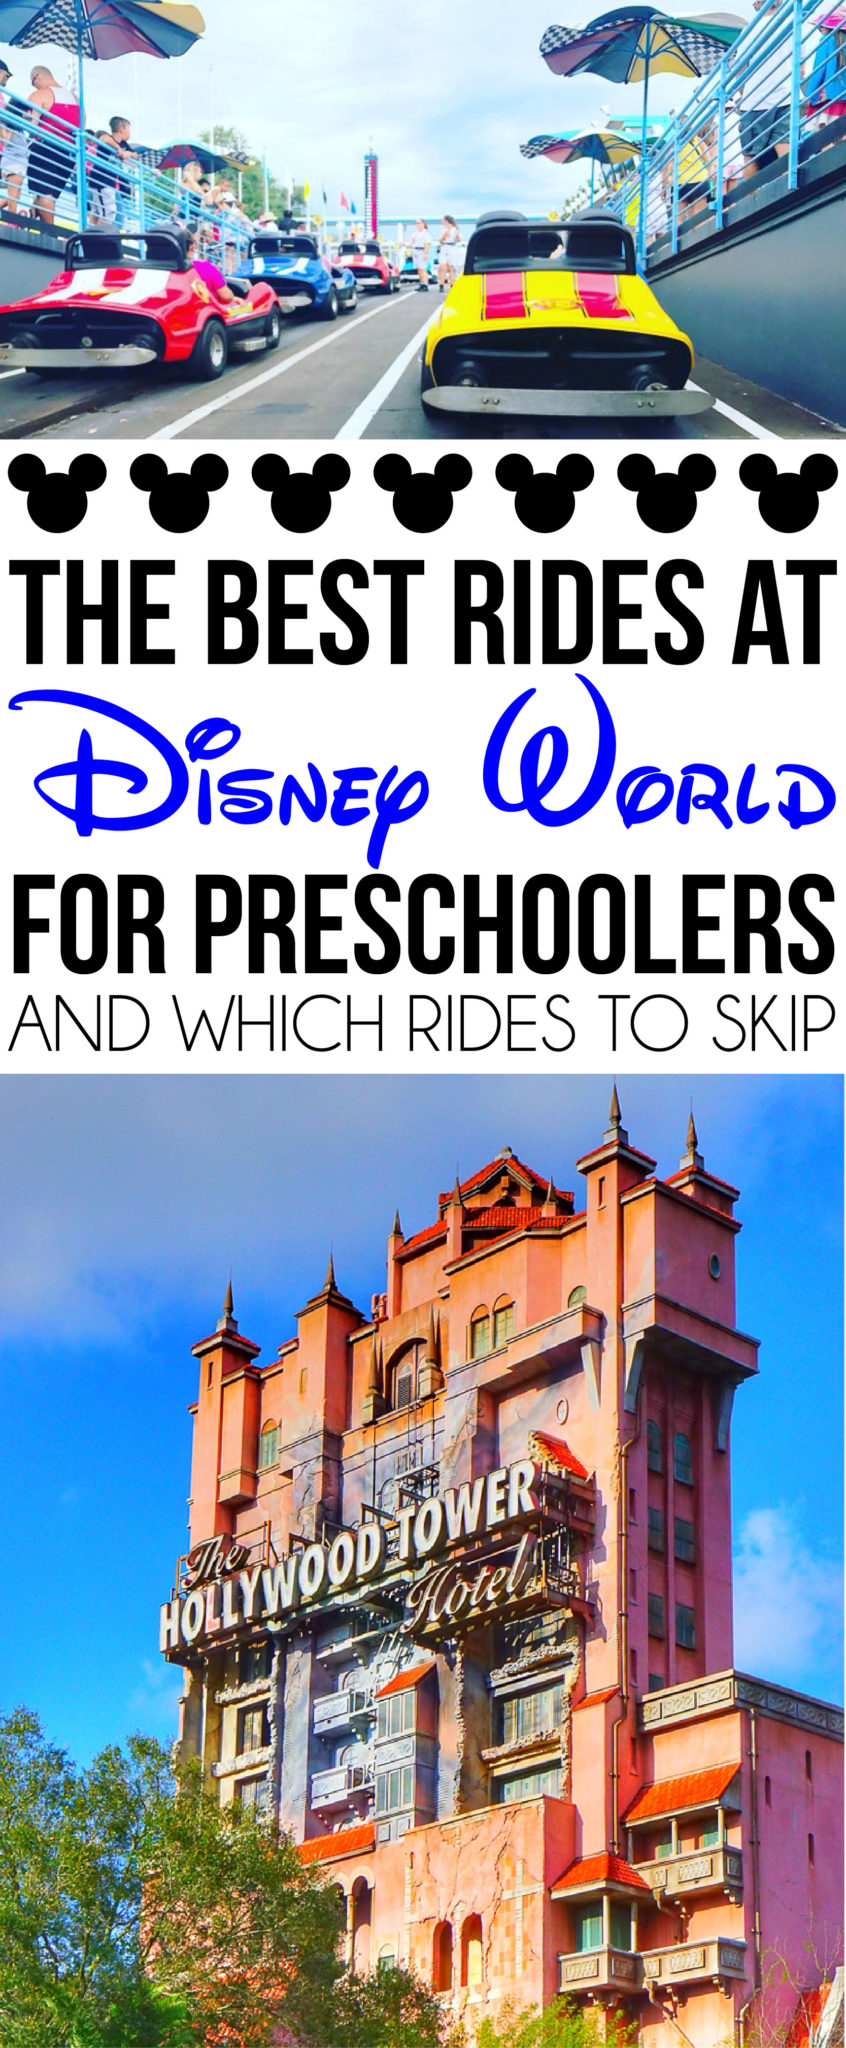 A break down by park of the best Disney World rides with height limits for kids. Which rides in Magic Kingdom, Epcot, Animal Kingdom, and Hollywood Studios should you ride with preschoolers and which ones should you skip? A great list that includes everything from roller coasters to new rides in 2017!